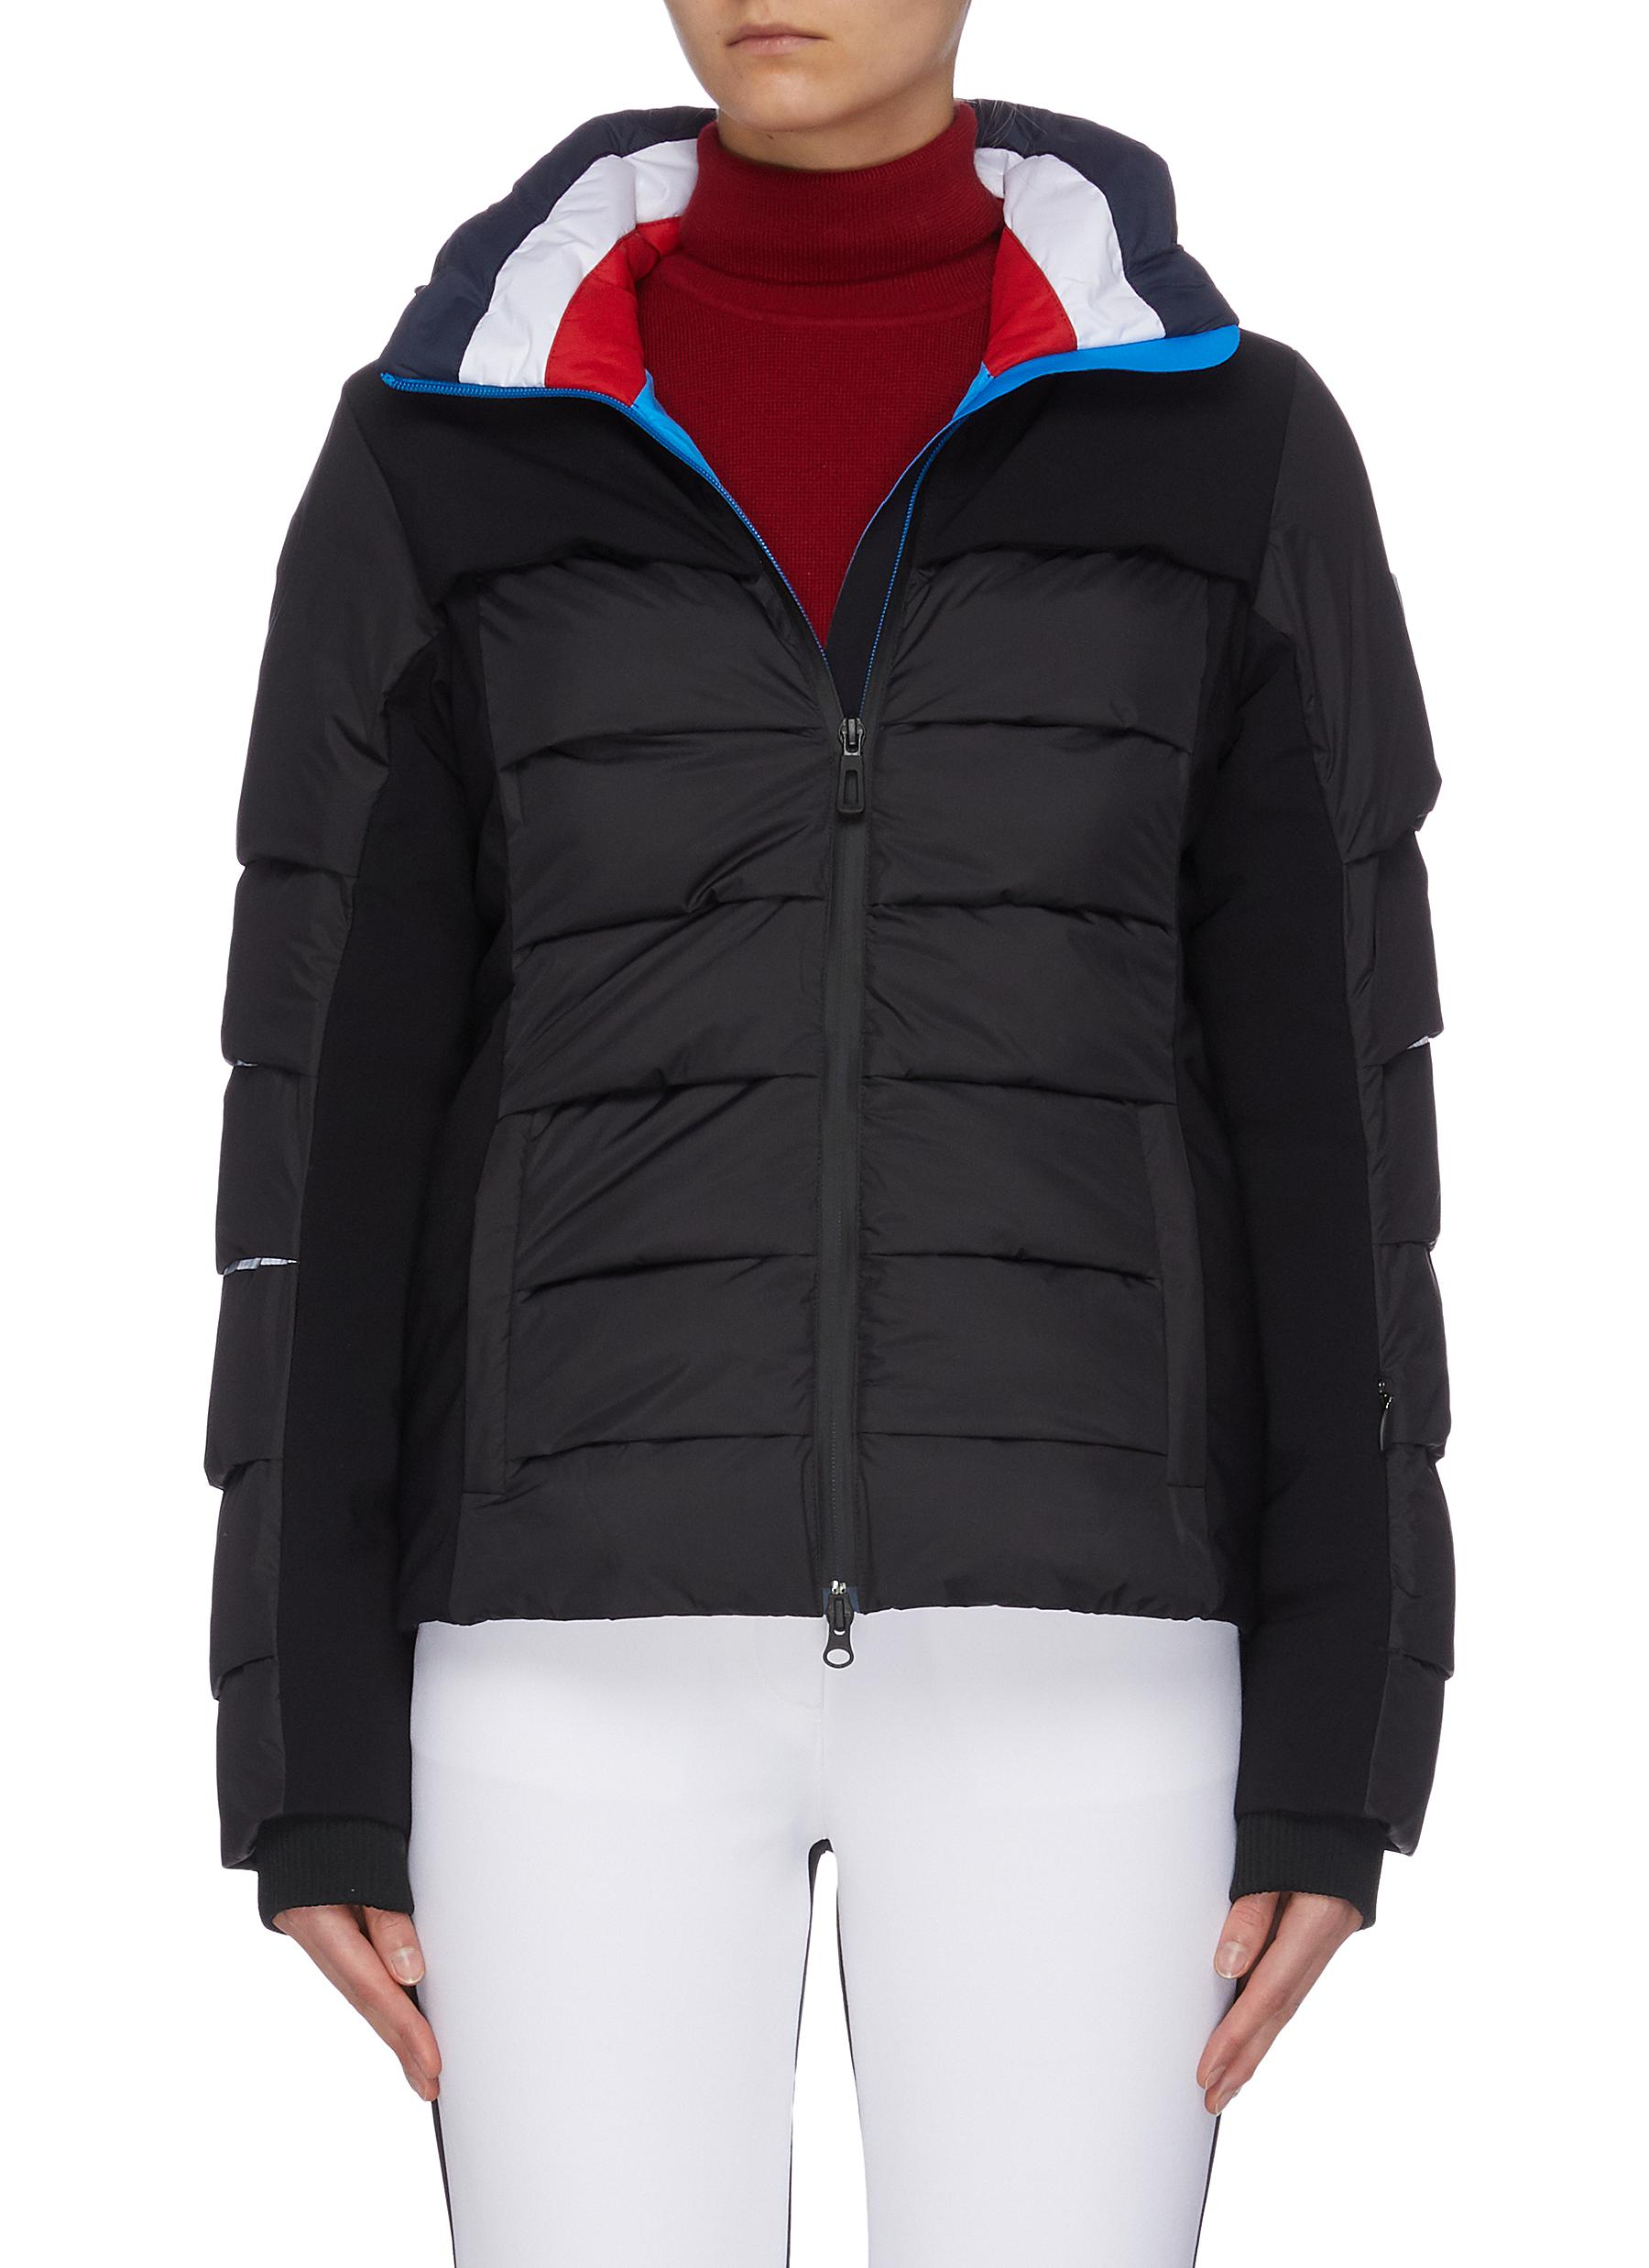 Buy Rossignol Jackets 'Surfusion' tricolour puffer jacket